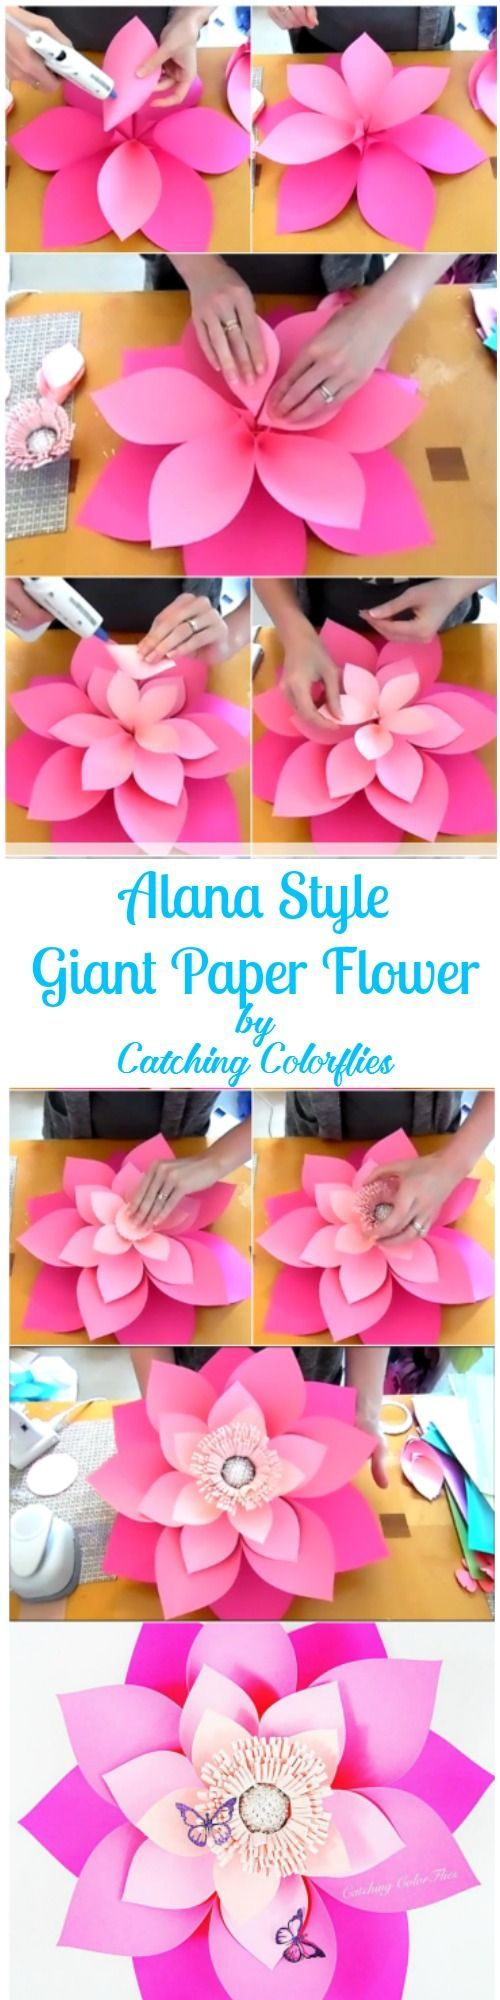 Alana Style Giant Flower Templates Bloggers On Pinterest